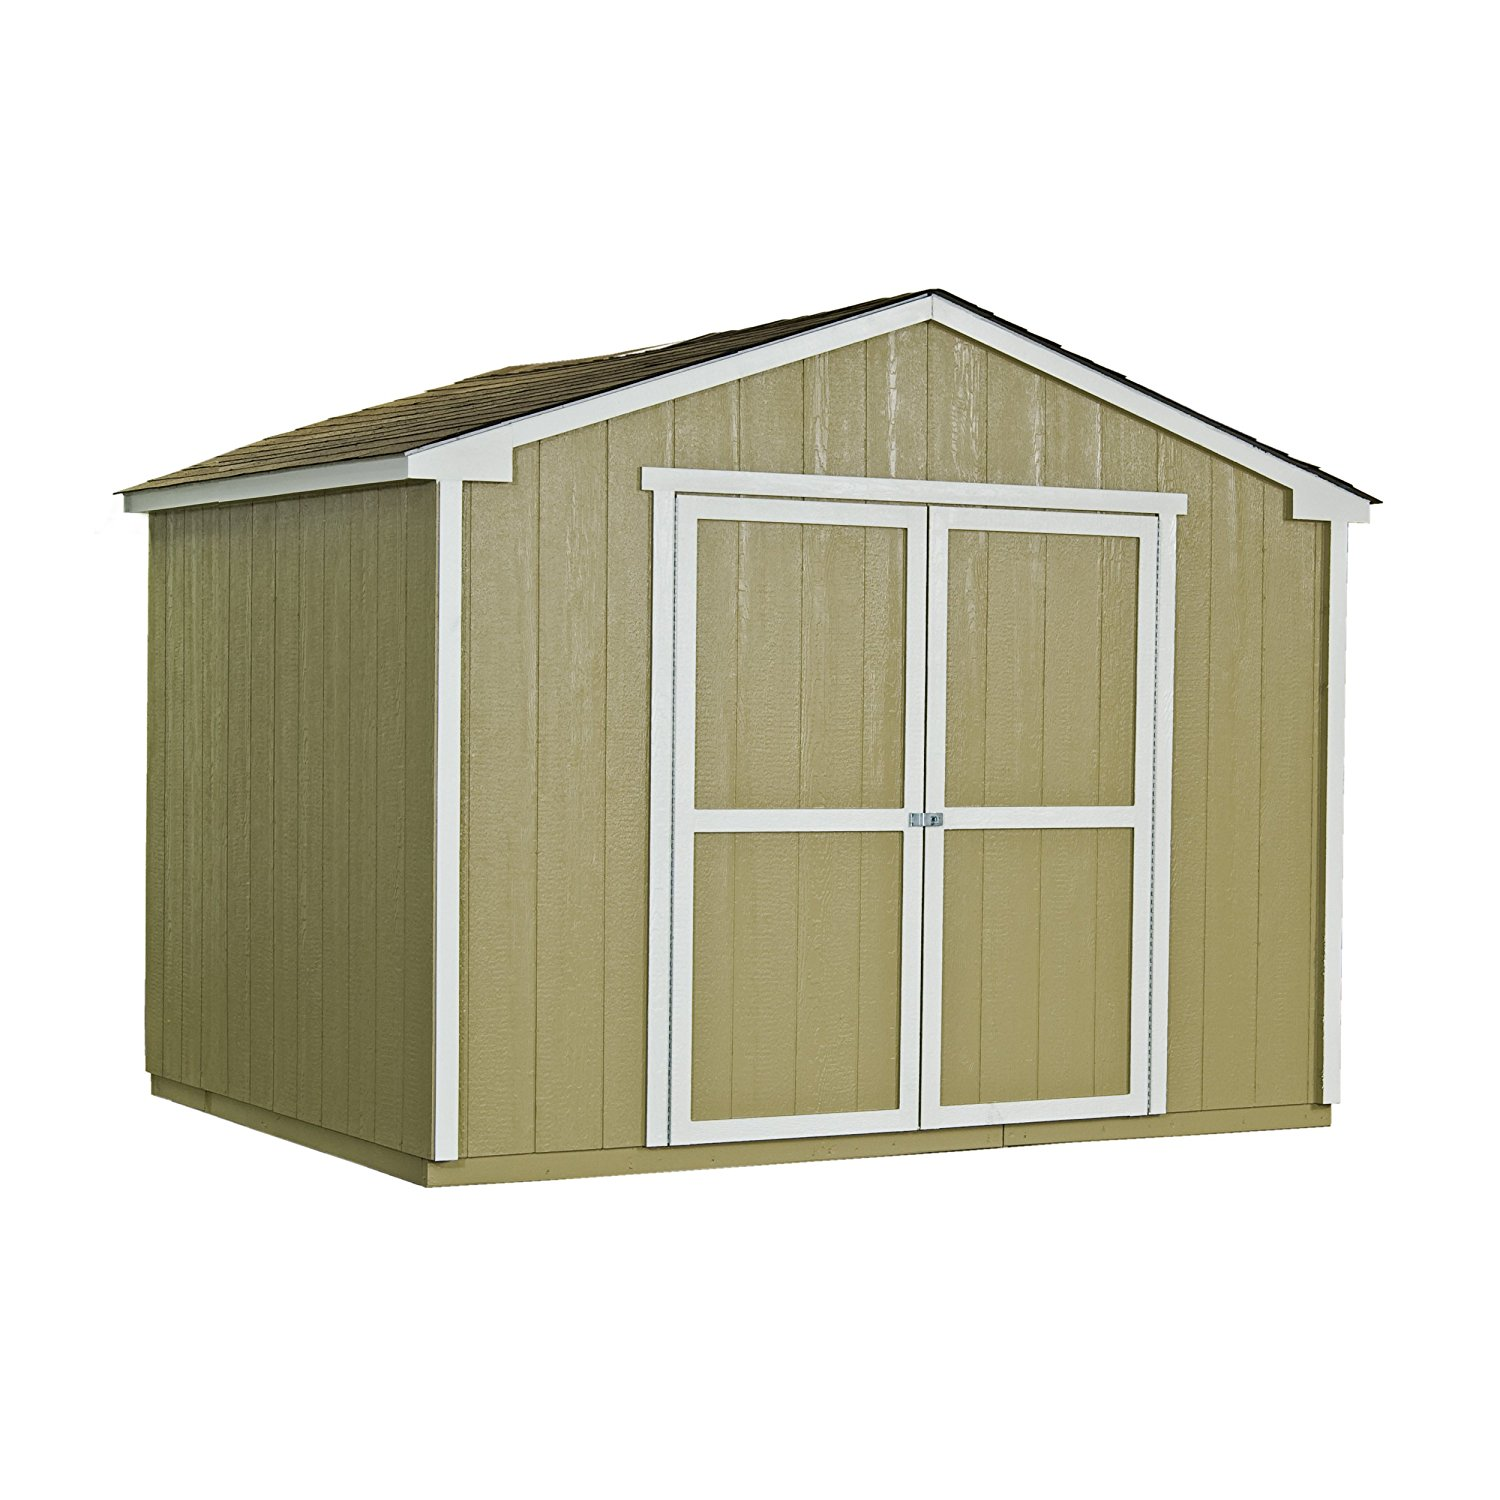 Handy Home Products 10 by 8-Feet Cumberland Wooden Storage Shed with Floor